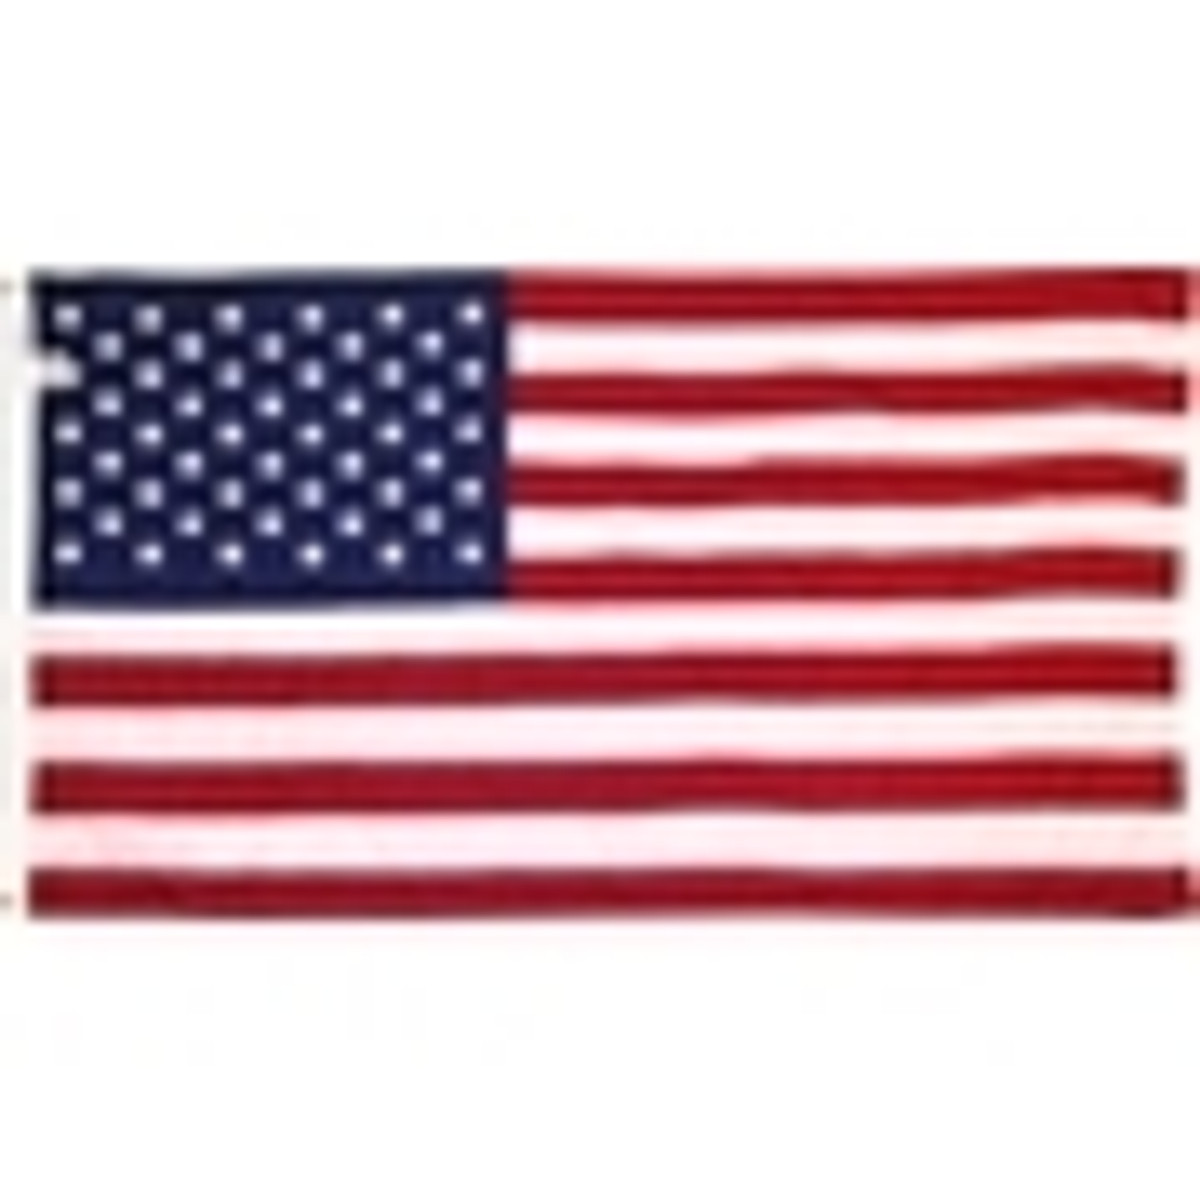 5x9.5ft American Flags